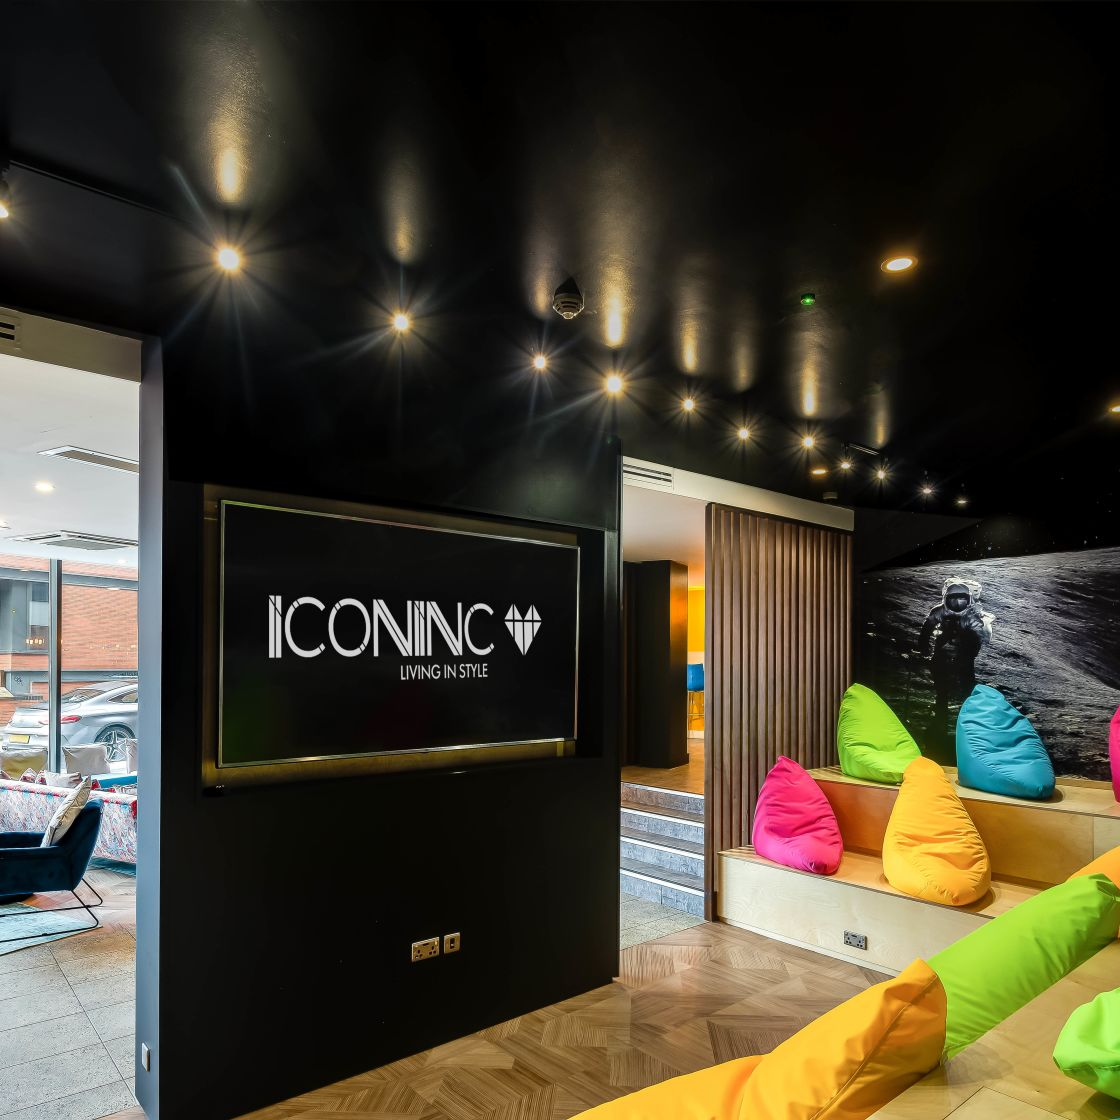 Ampitheatre with seating and flat screen TV at IconInc, The Edge. Student Accommodation in Leeds.